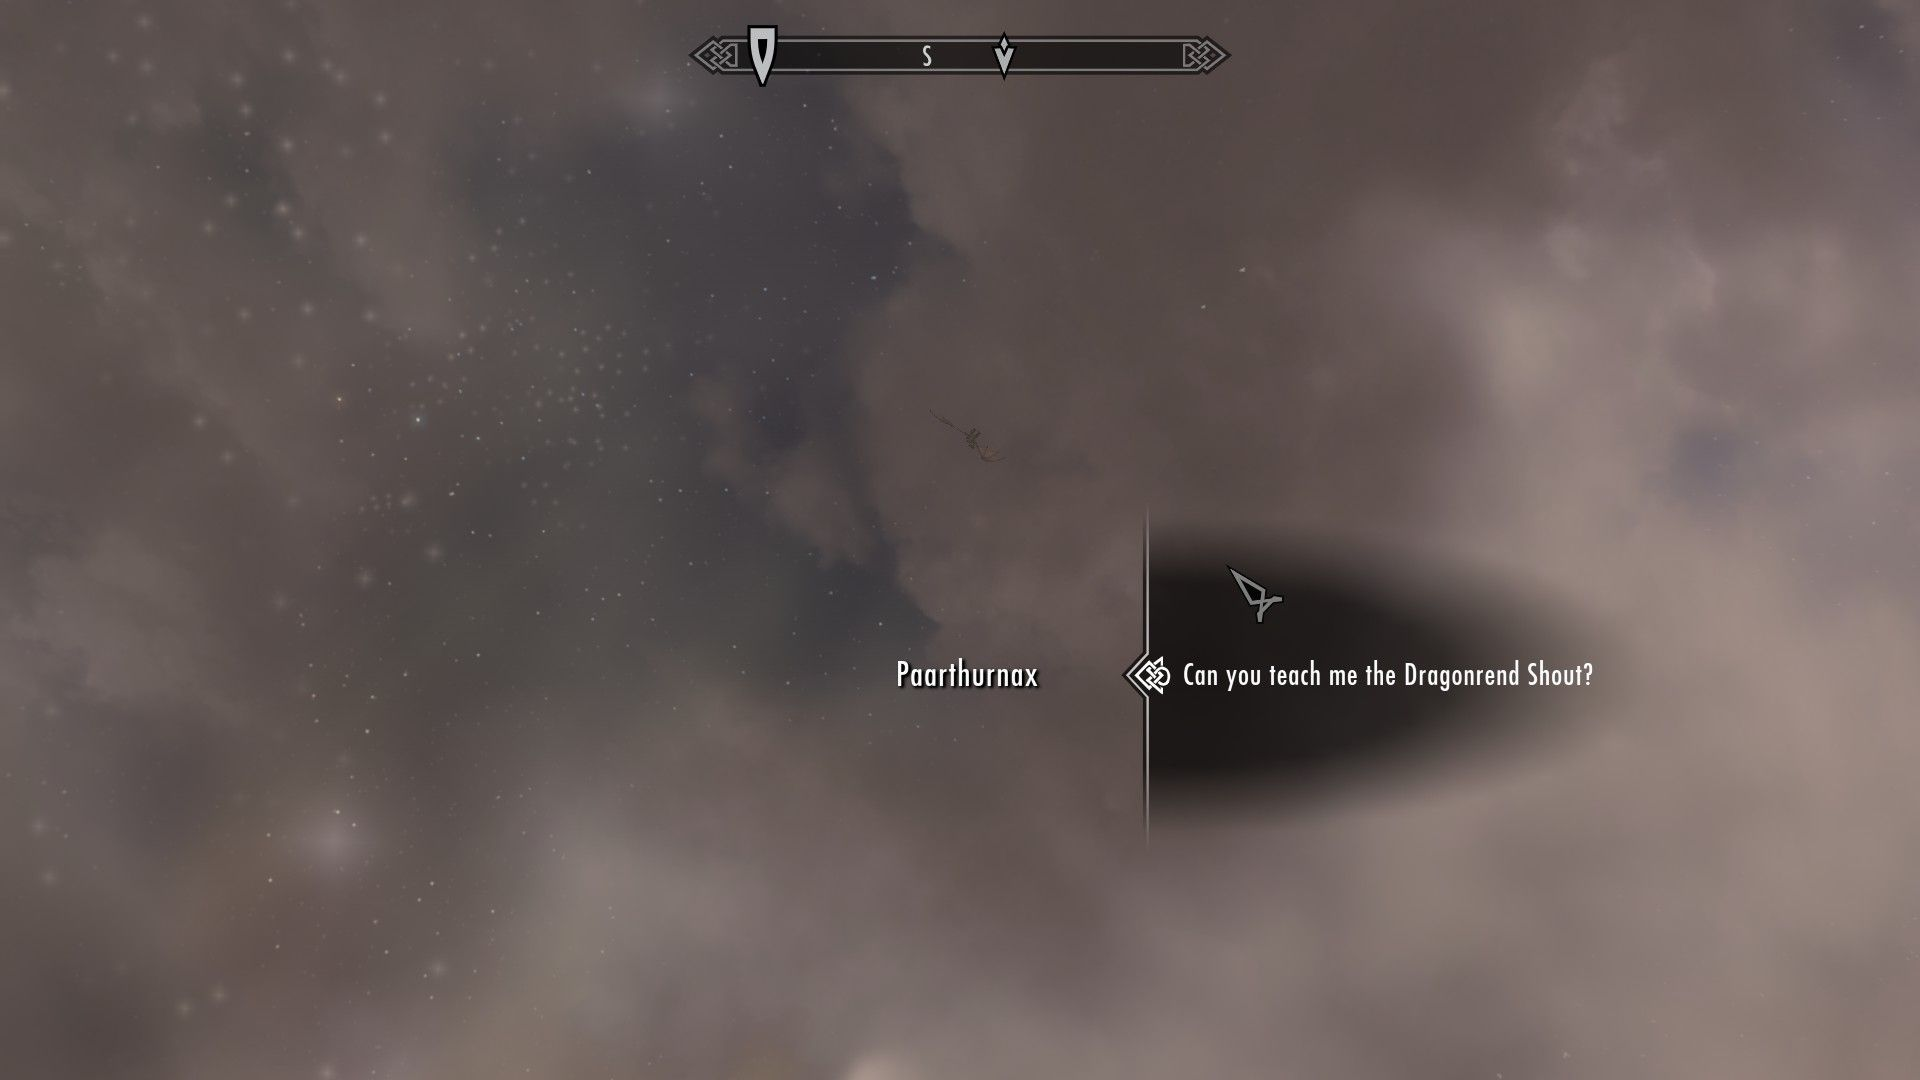 Paarthurnax can into space #games #Skyrim #elderscrolls #BE3 #gaming #videogames #Concours #NGC